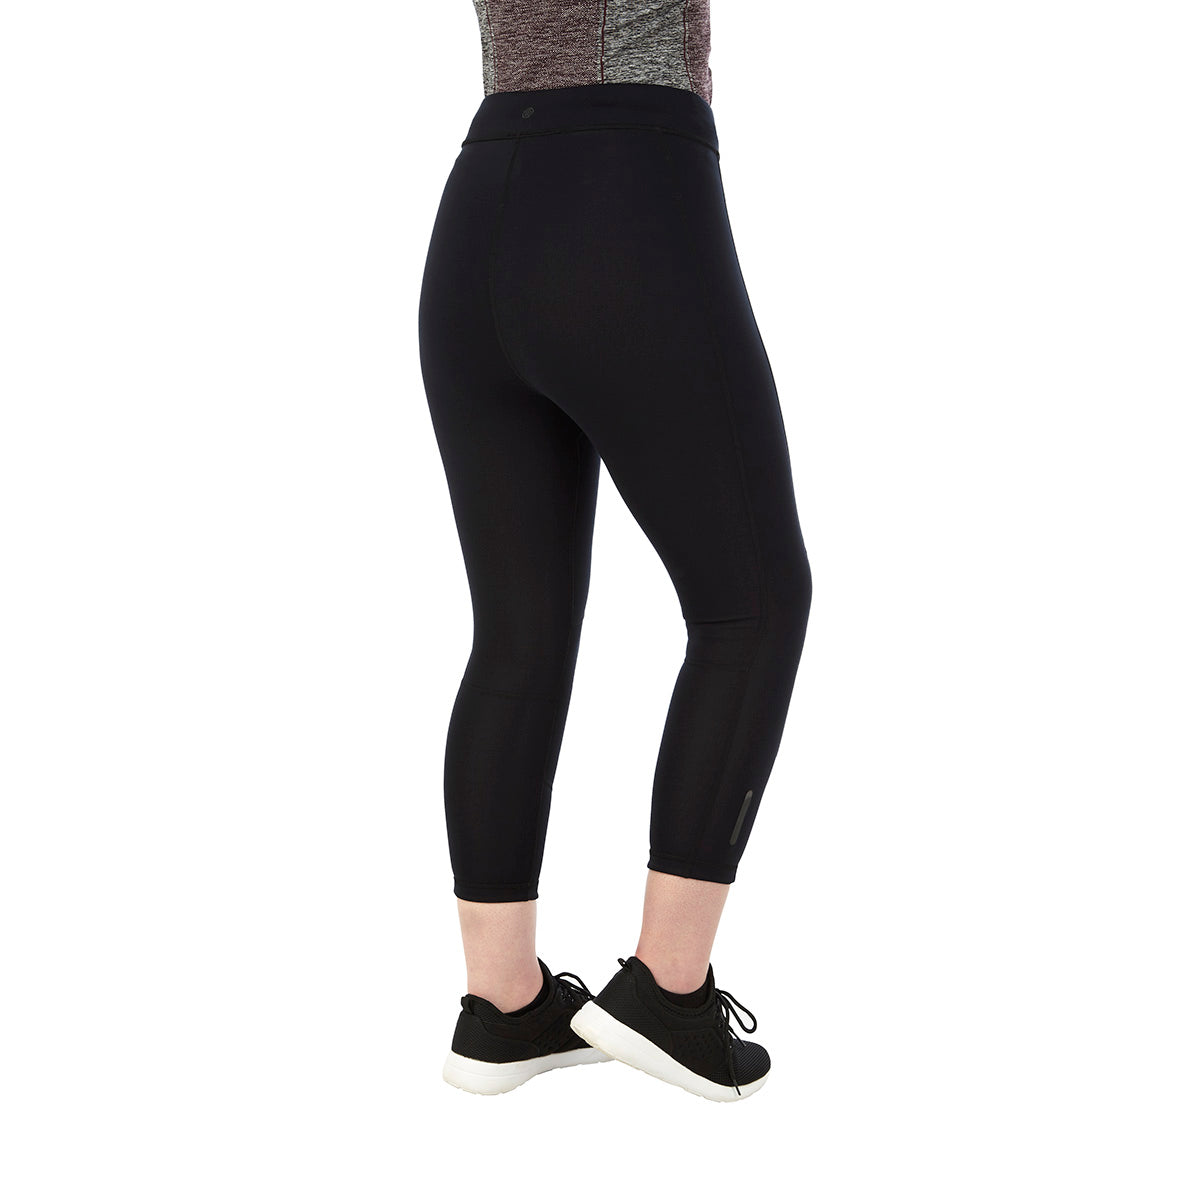 Raid Womens Reversible Performance Leggings - Black/Grey Marl image 4